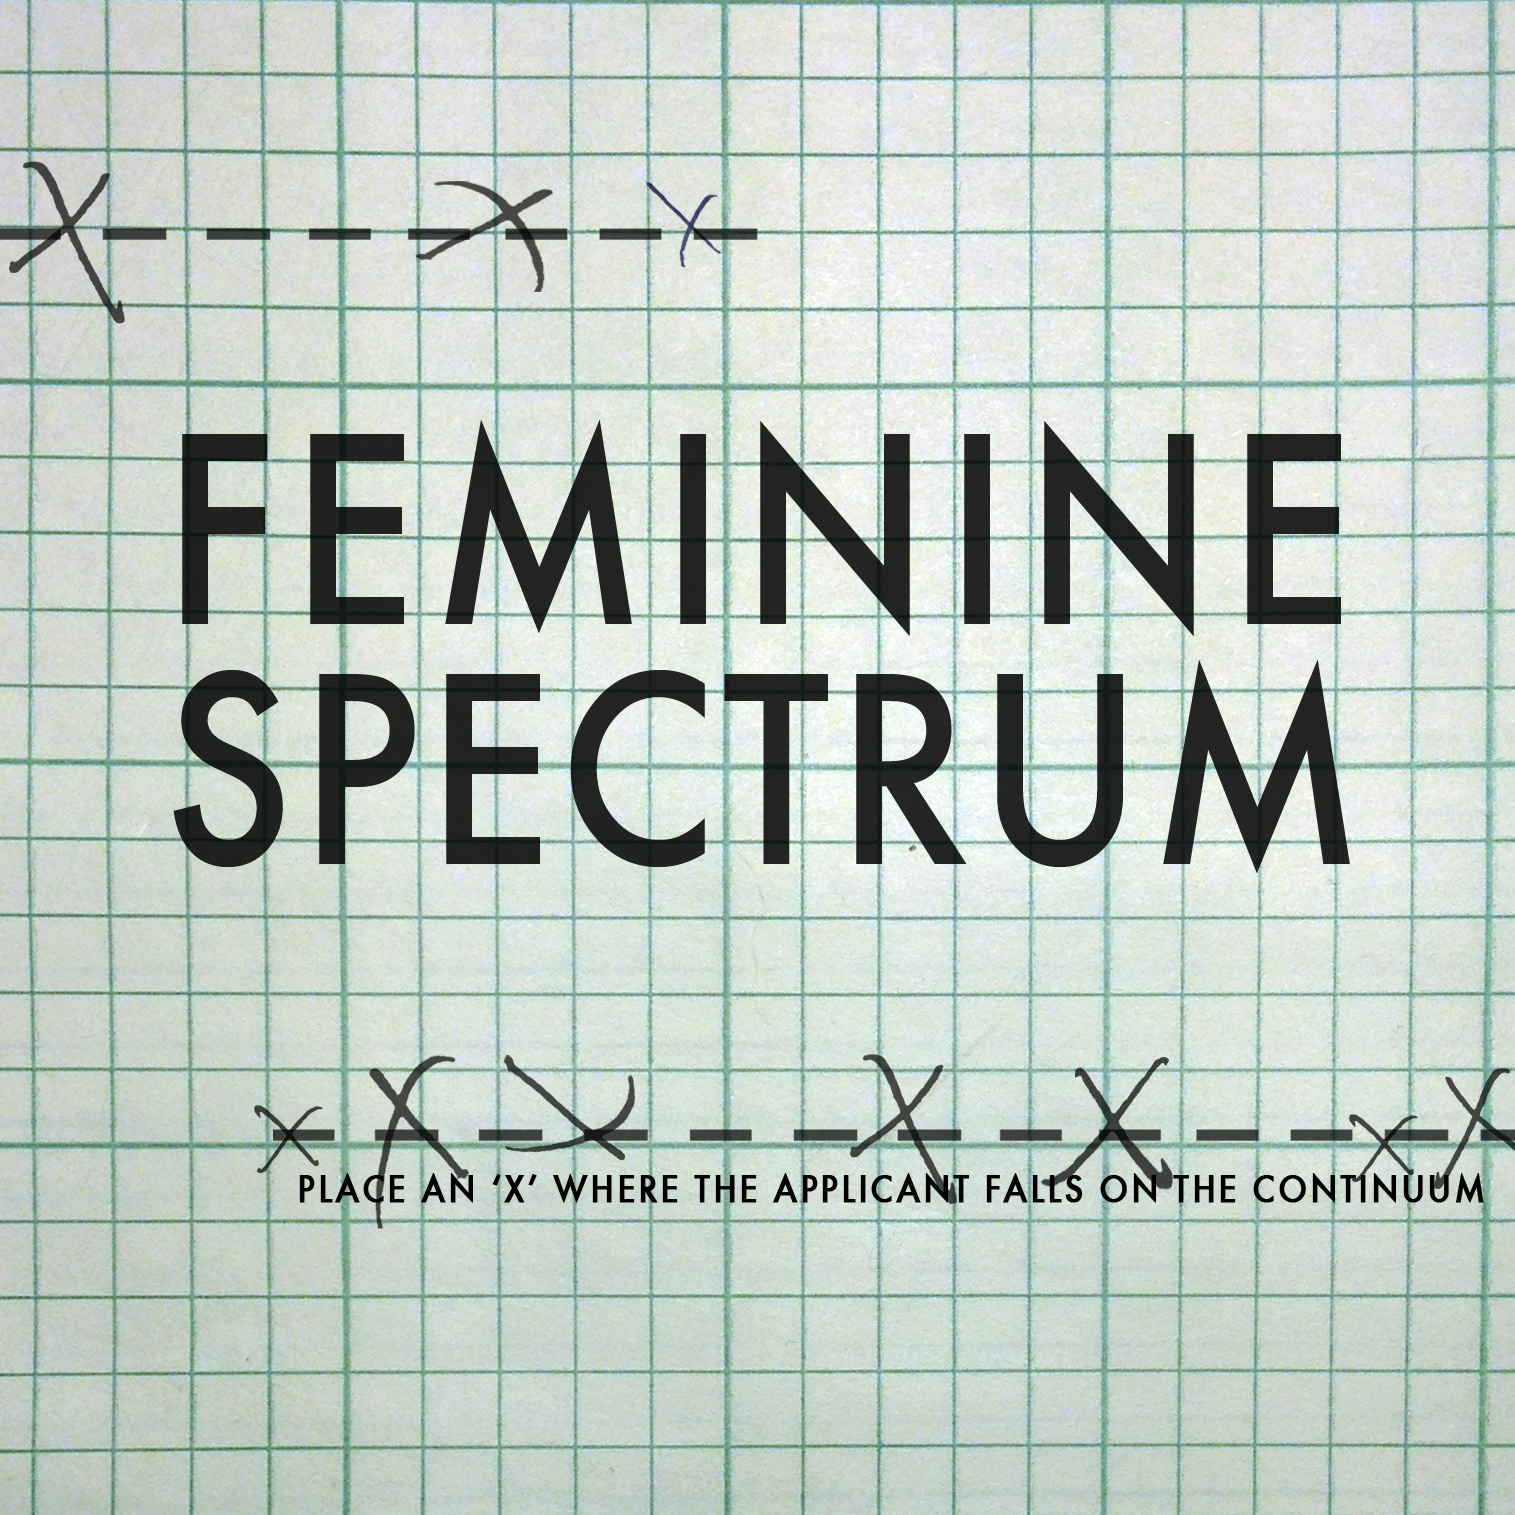 FEMININE SPECTRUM GRAPHIC_FINAL.jpg